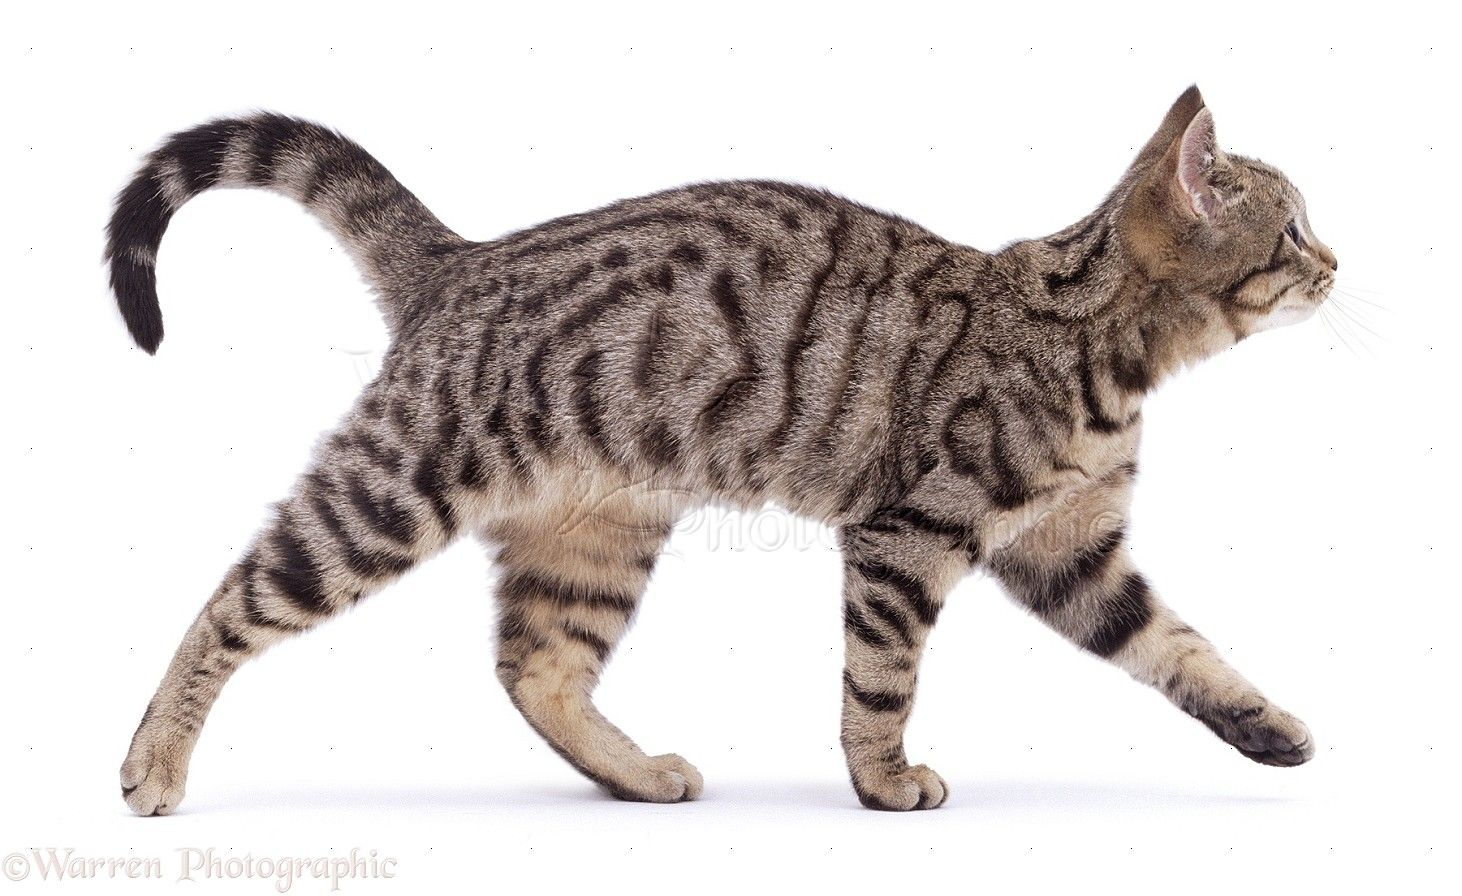 cats walk with a pacing gait they move both legs on one